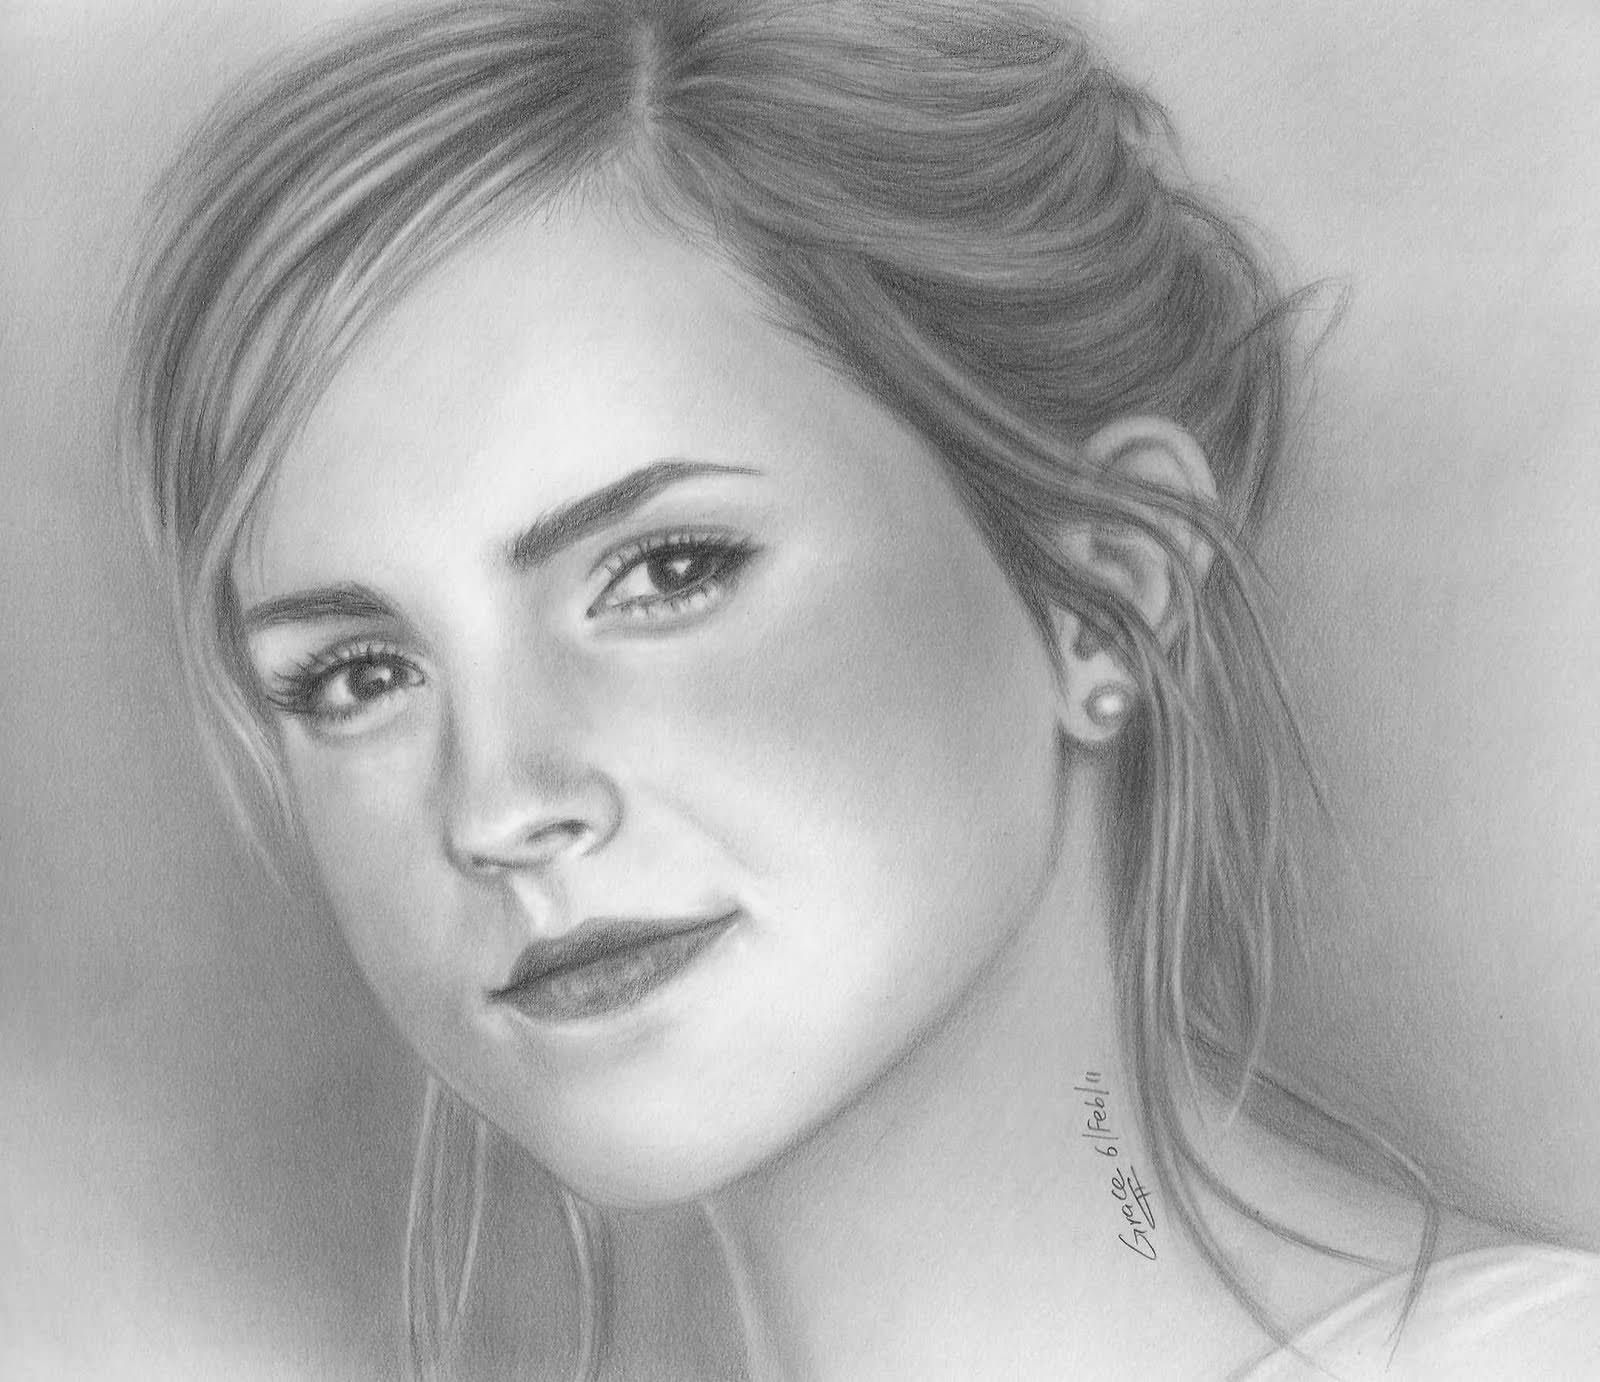 Sketches Of Faces | Share Good Stuffs: Awesome Pencil Sketches of ...